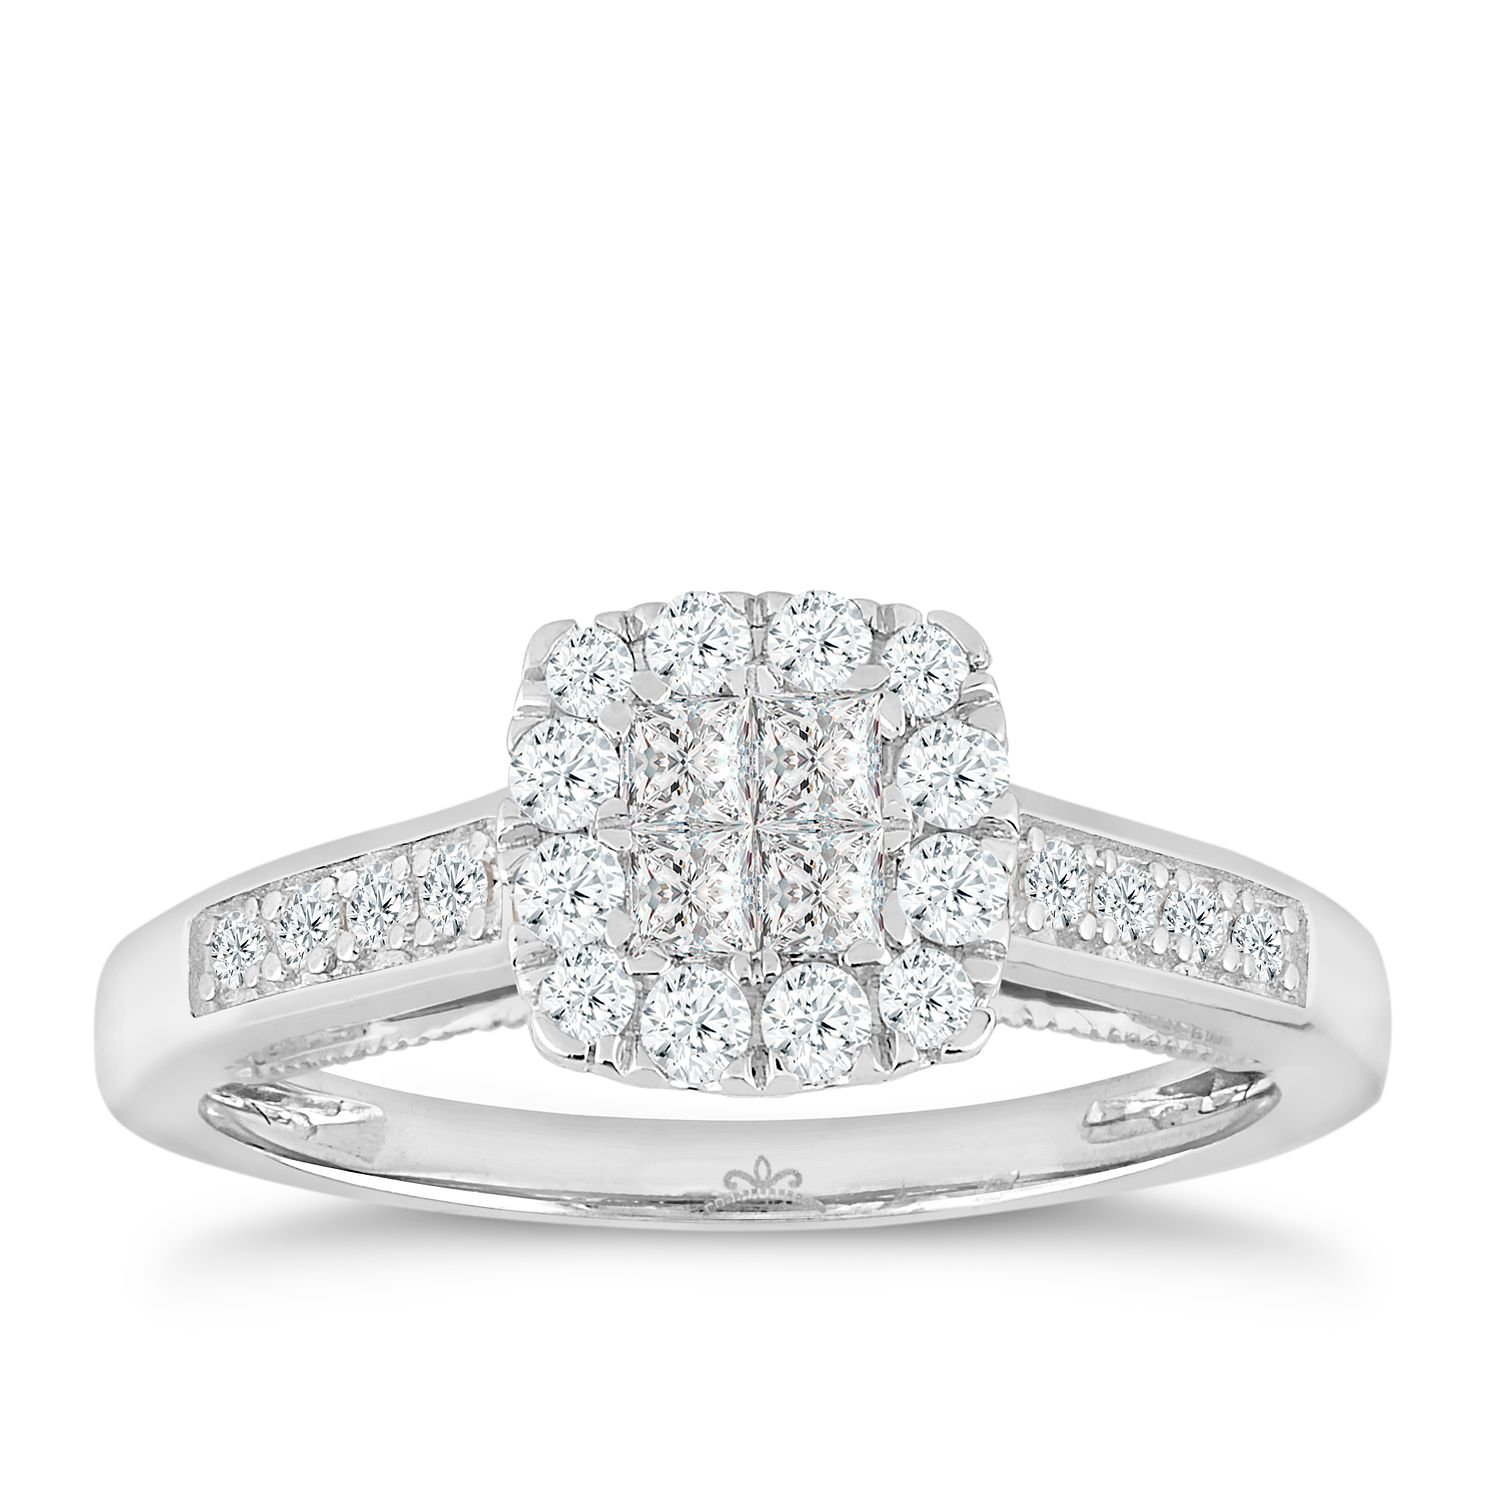 9ct White Gold 1 2 Carat Princessa Diamond Cluster Ring